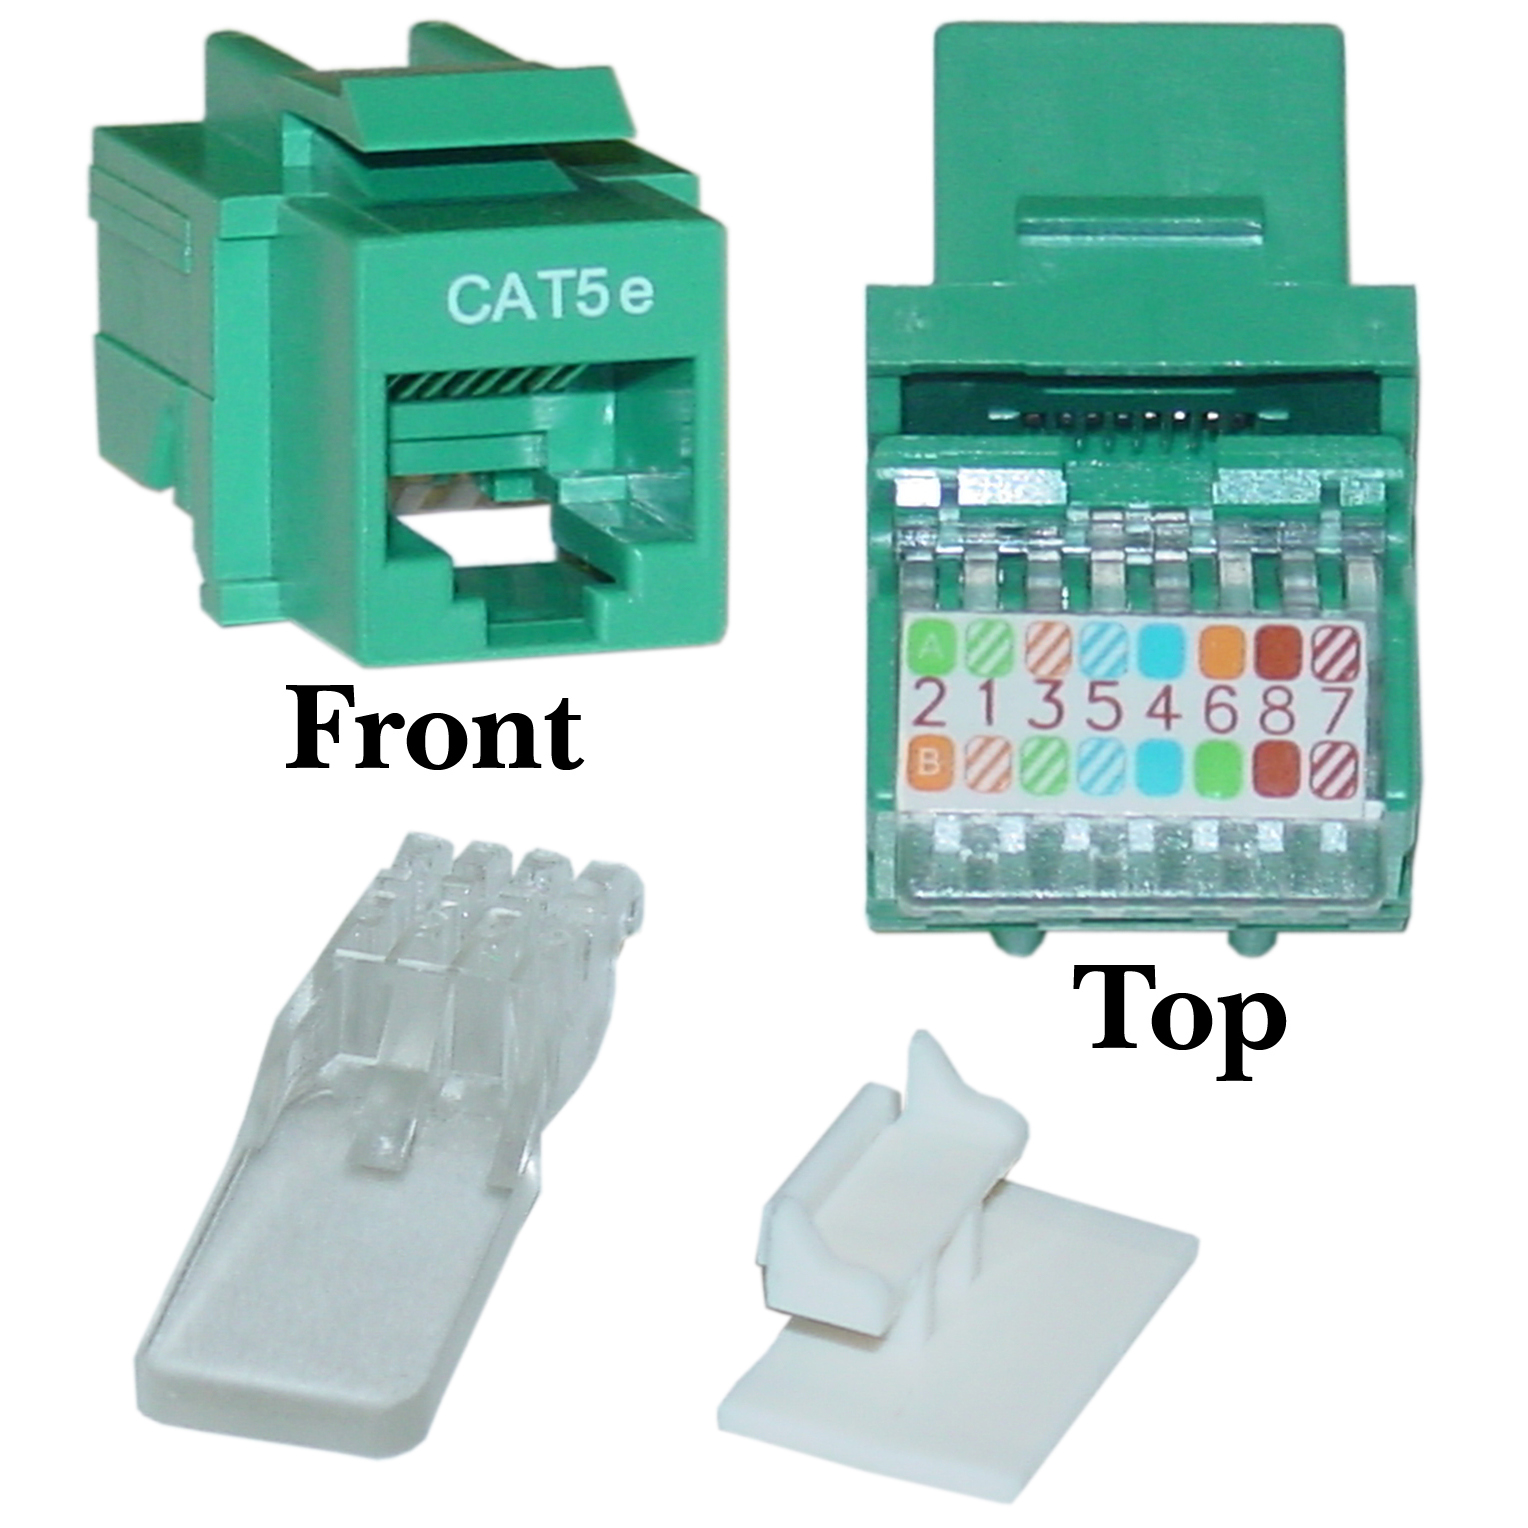 hight resolution of cat5e keystone jack green toolless rj45 female part number 311